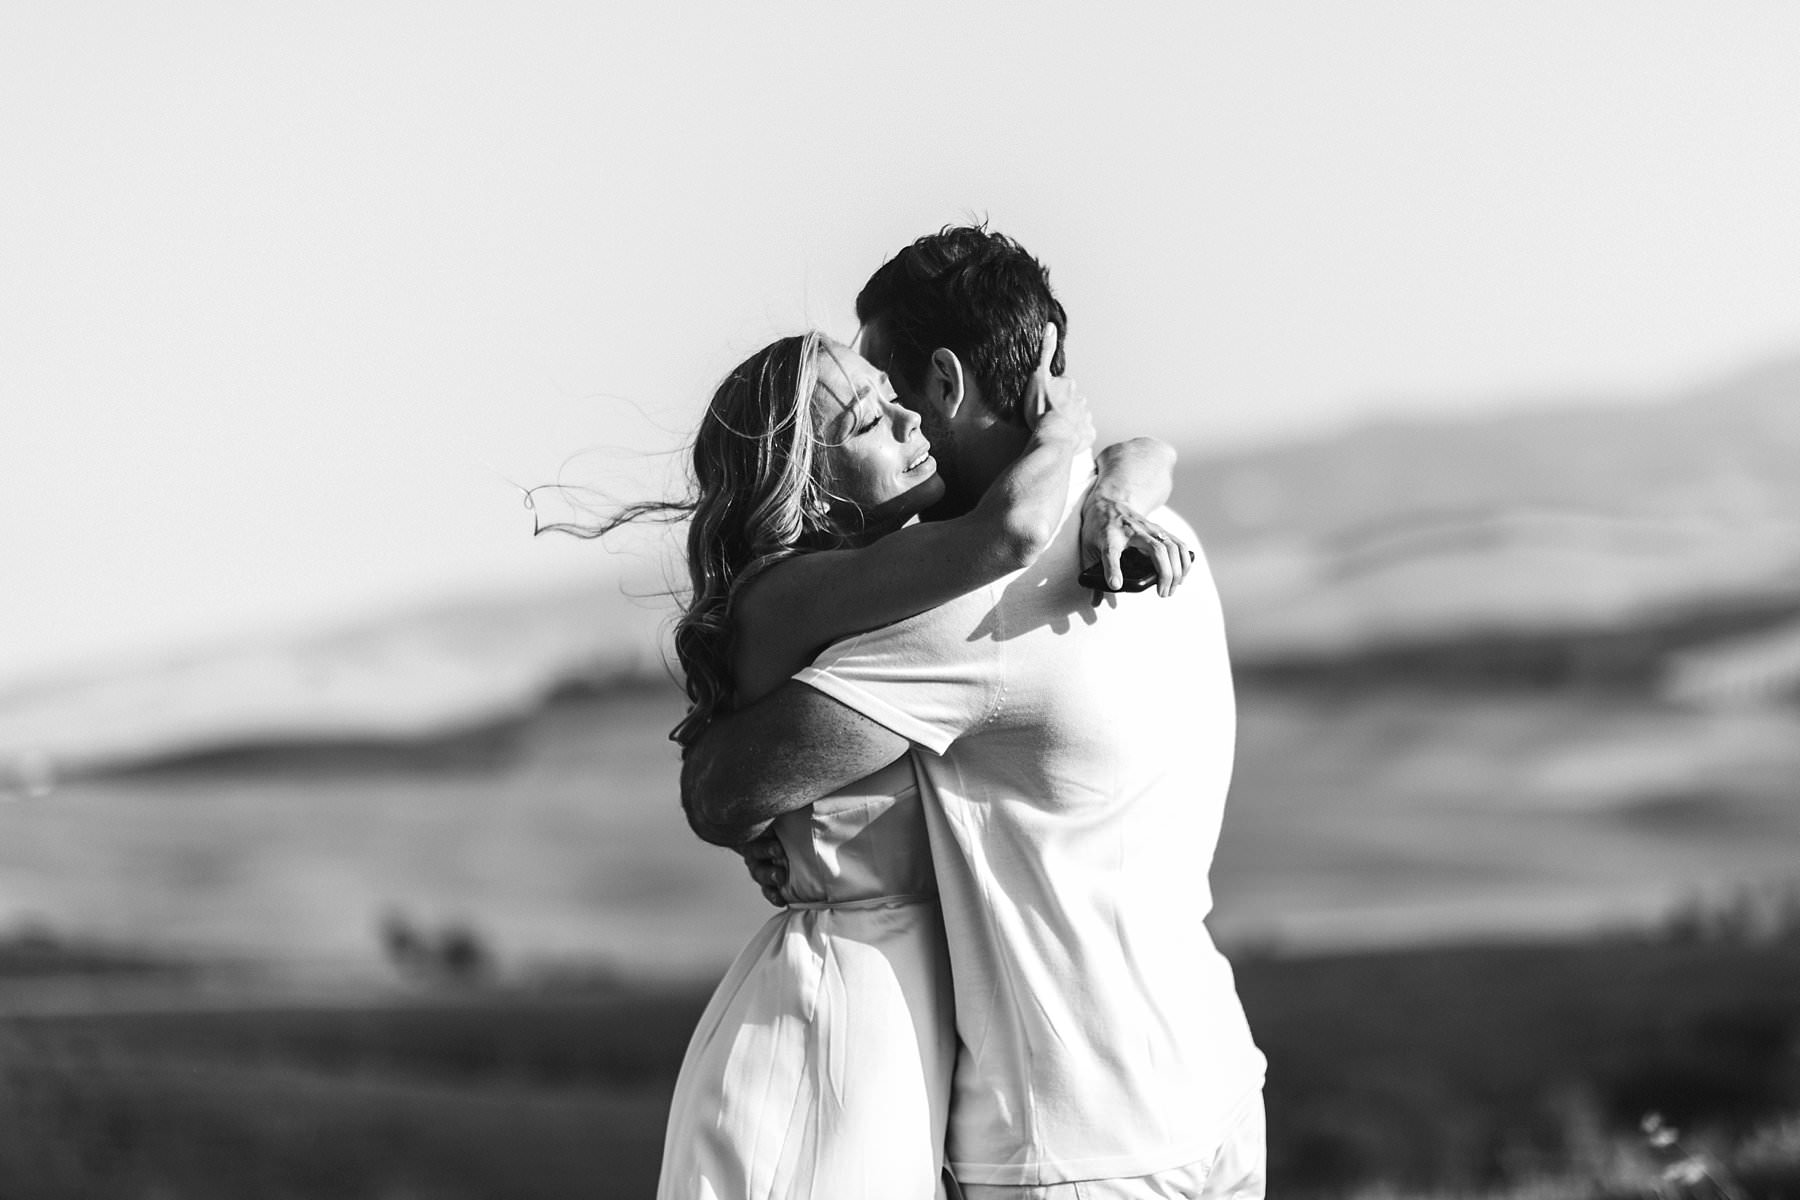 Dreamy Italy elopement with vows renewal in Val d'Orcia. Lovely and exciting elopement wedding session in Tuscany countryside area of Val D'Orcia near Pienza